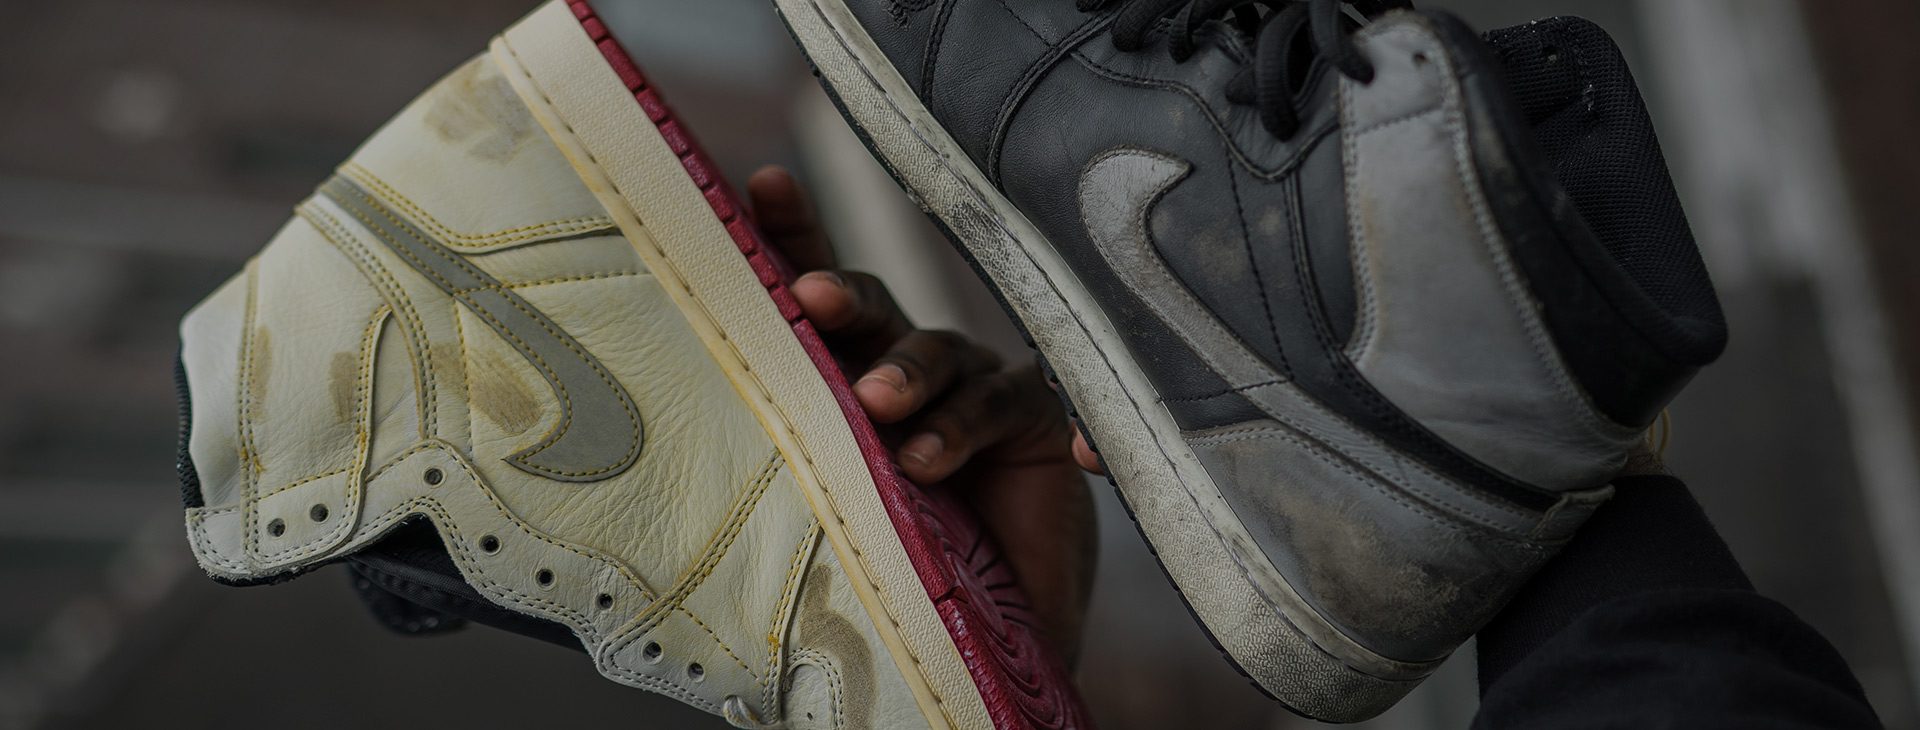 Nigel Sylvester Reveals The Destroyed Air Jordan 1s That Inspired His  Collaboration 0cf8df8af